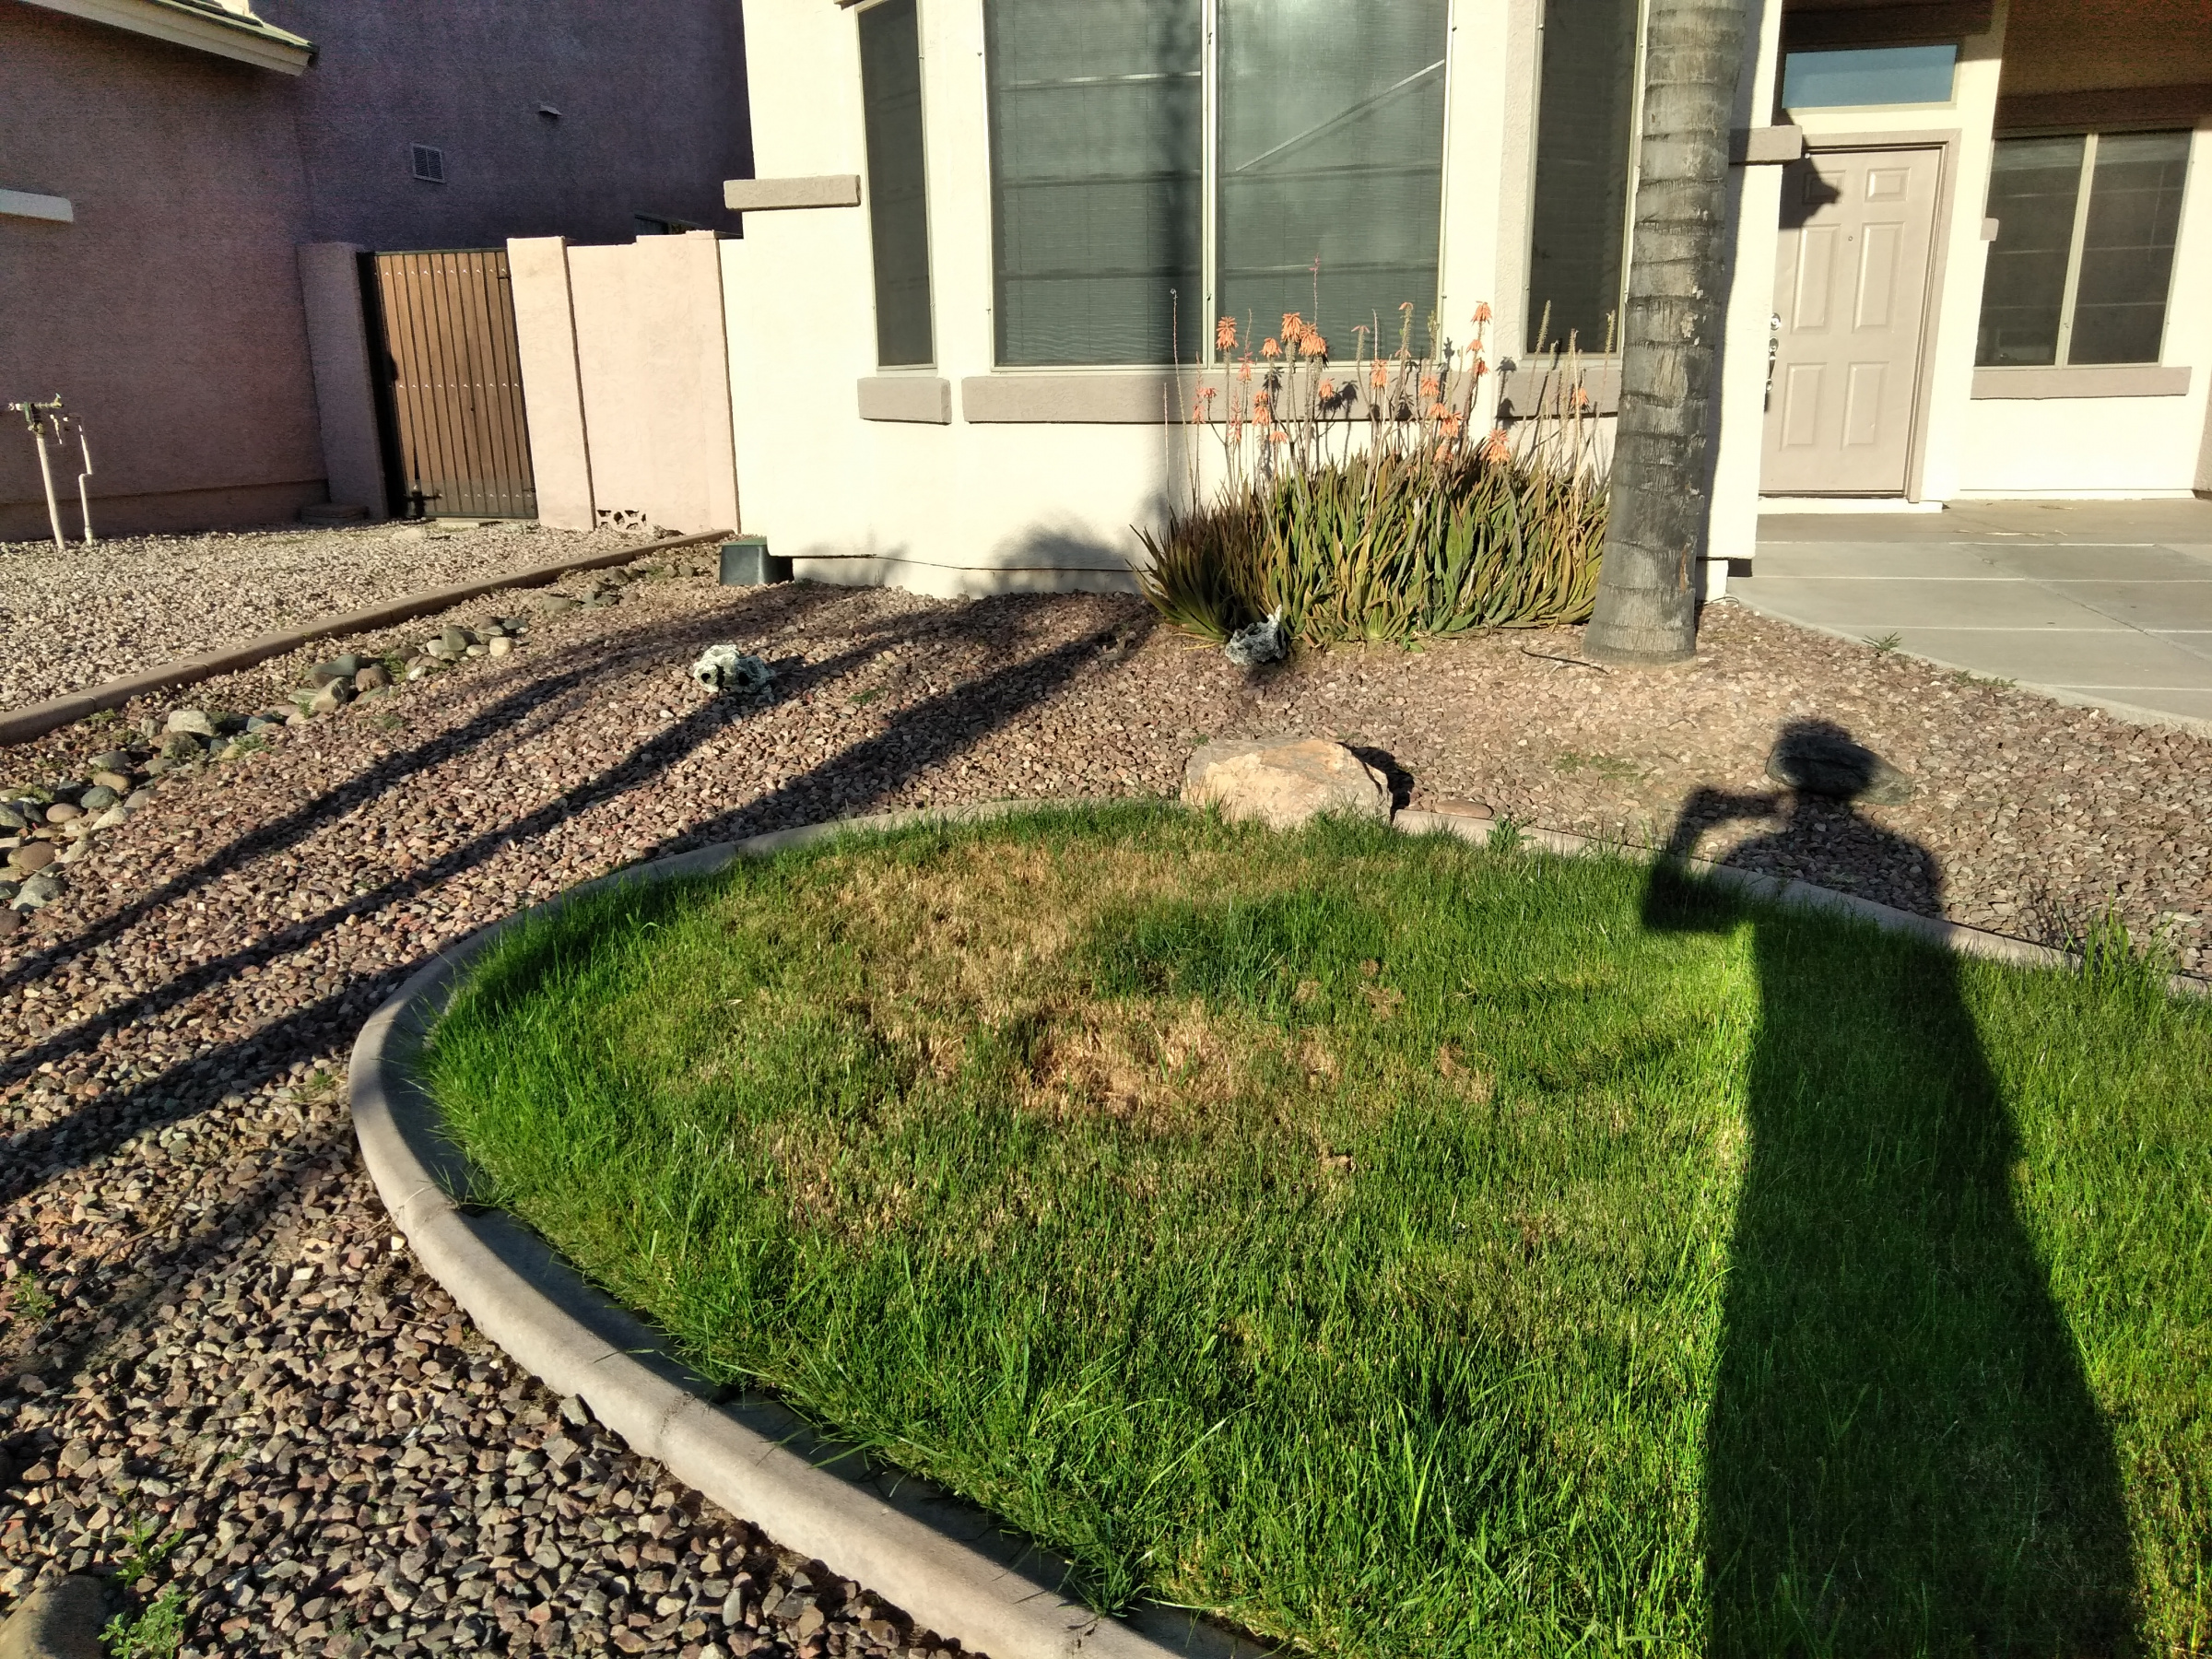 Lawn with a patch of dead/???-1.jpg